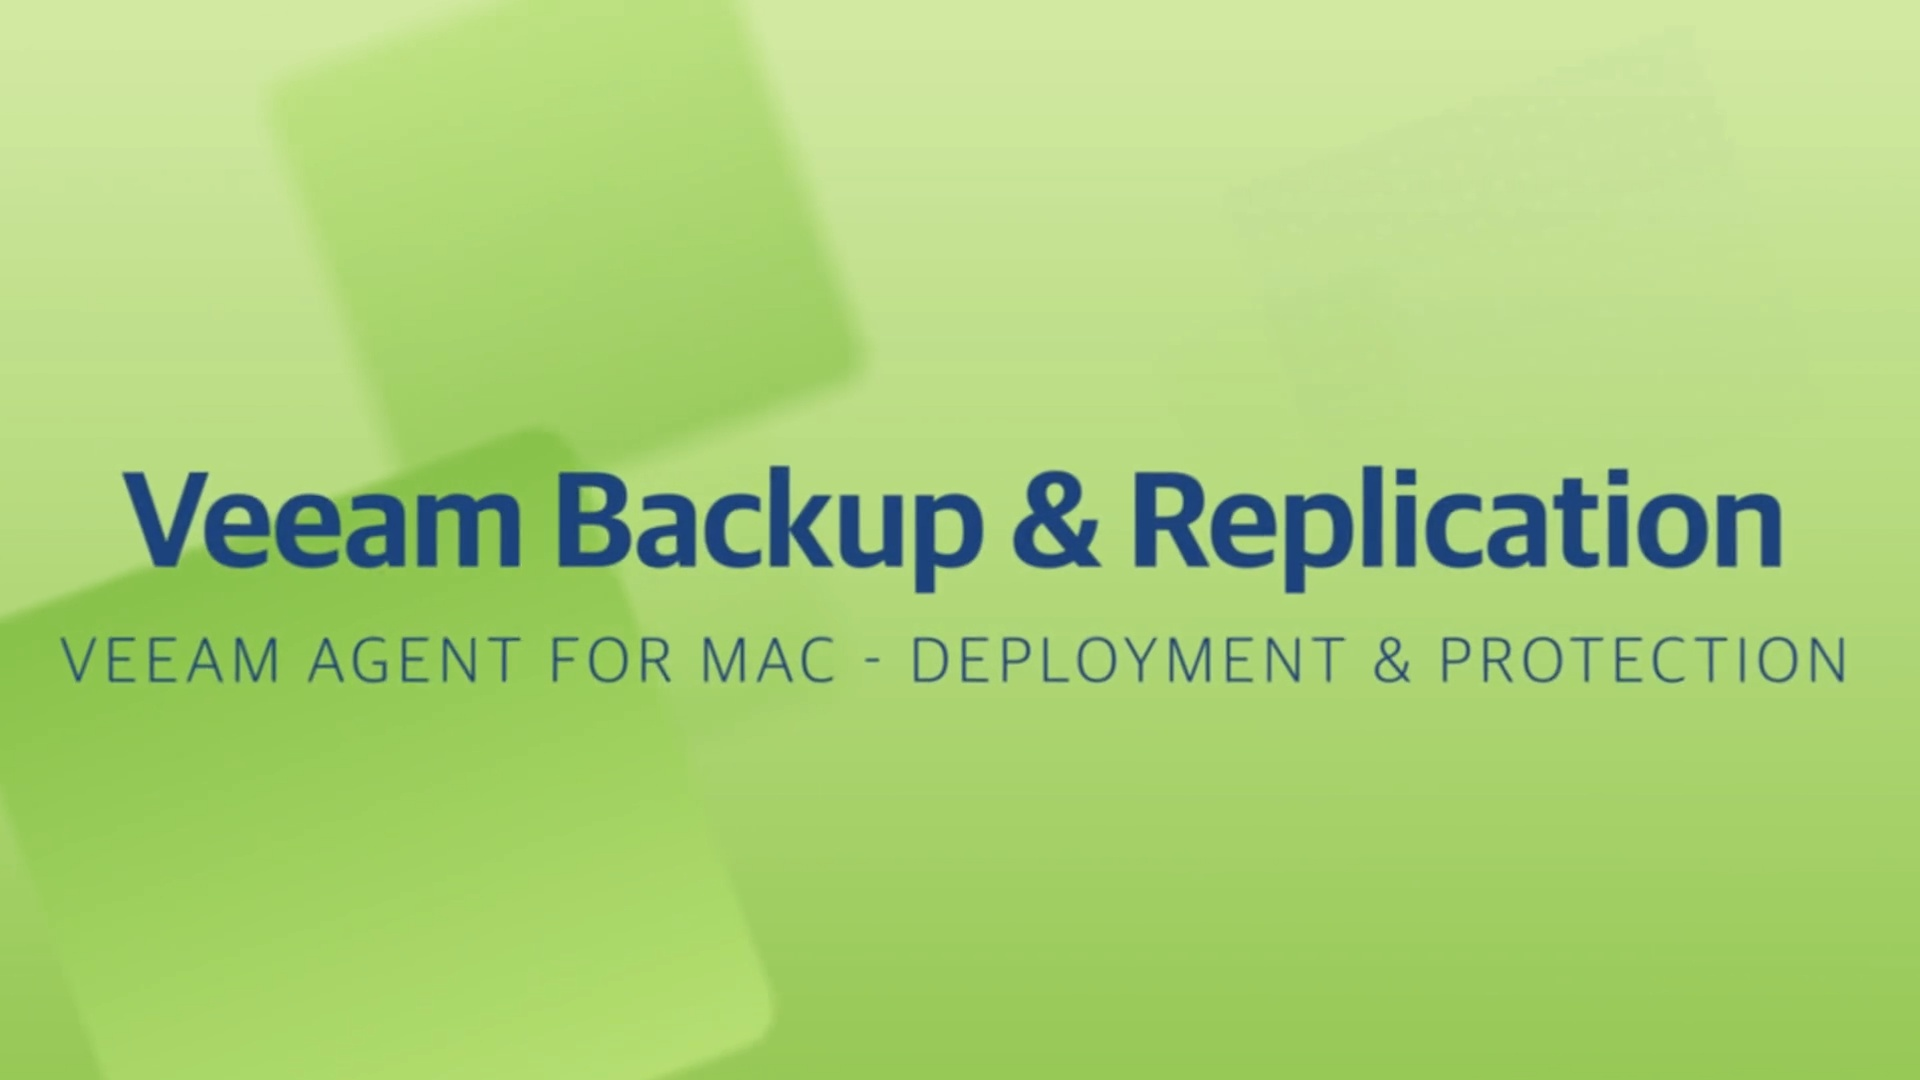 Product launch v11 - VBR - Veeam Agents for Mac - Deployment & Protection